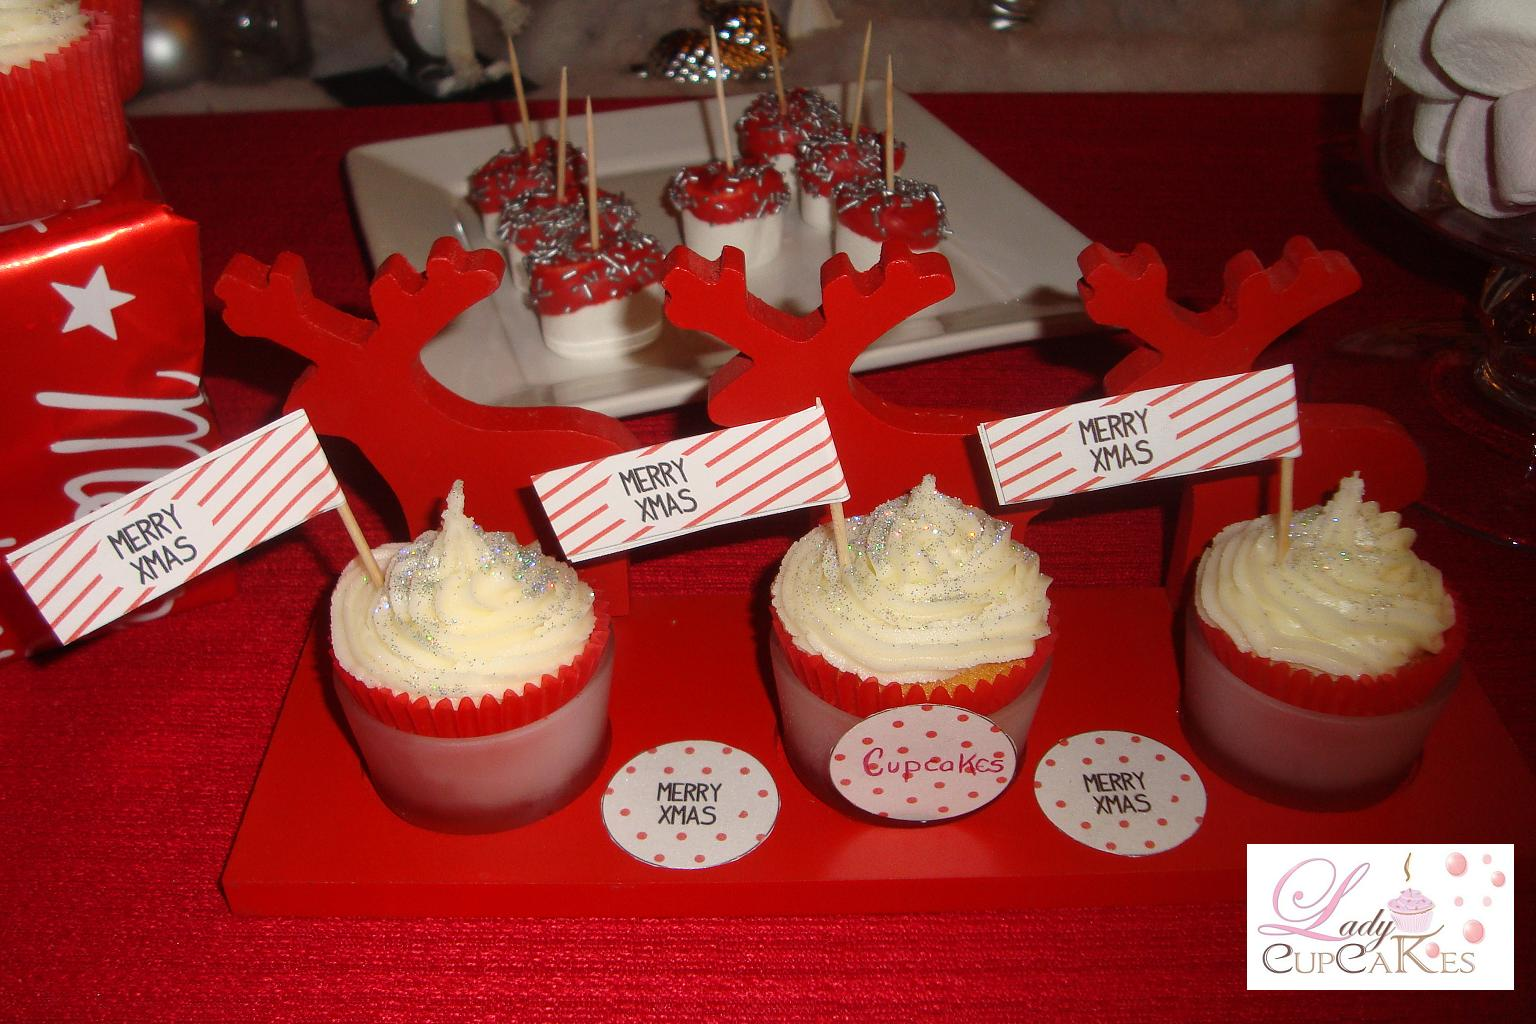 #B80D0E Lady Cupcakes: La Xmas Sweet Table Noel 2011 5757 idées déco noel simple 1536x1024 px @ aertt.com